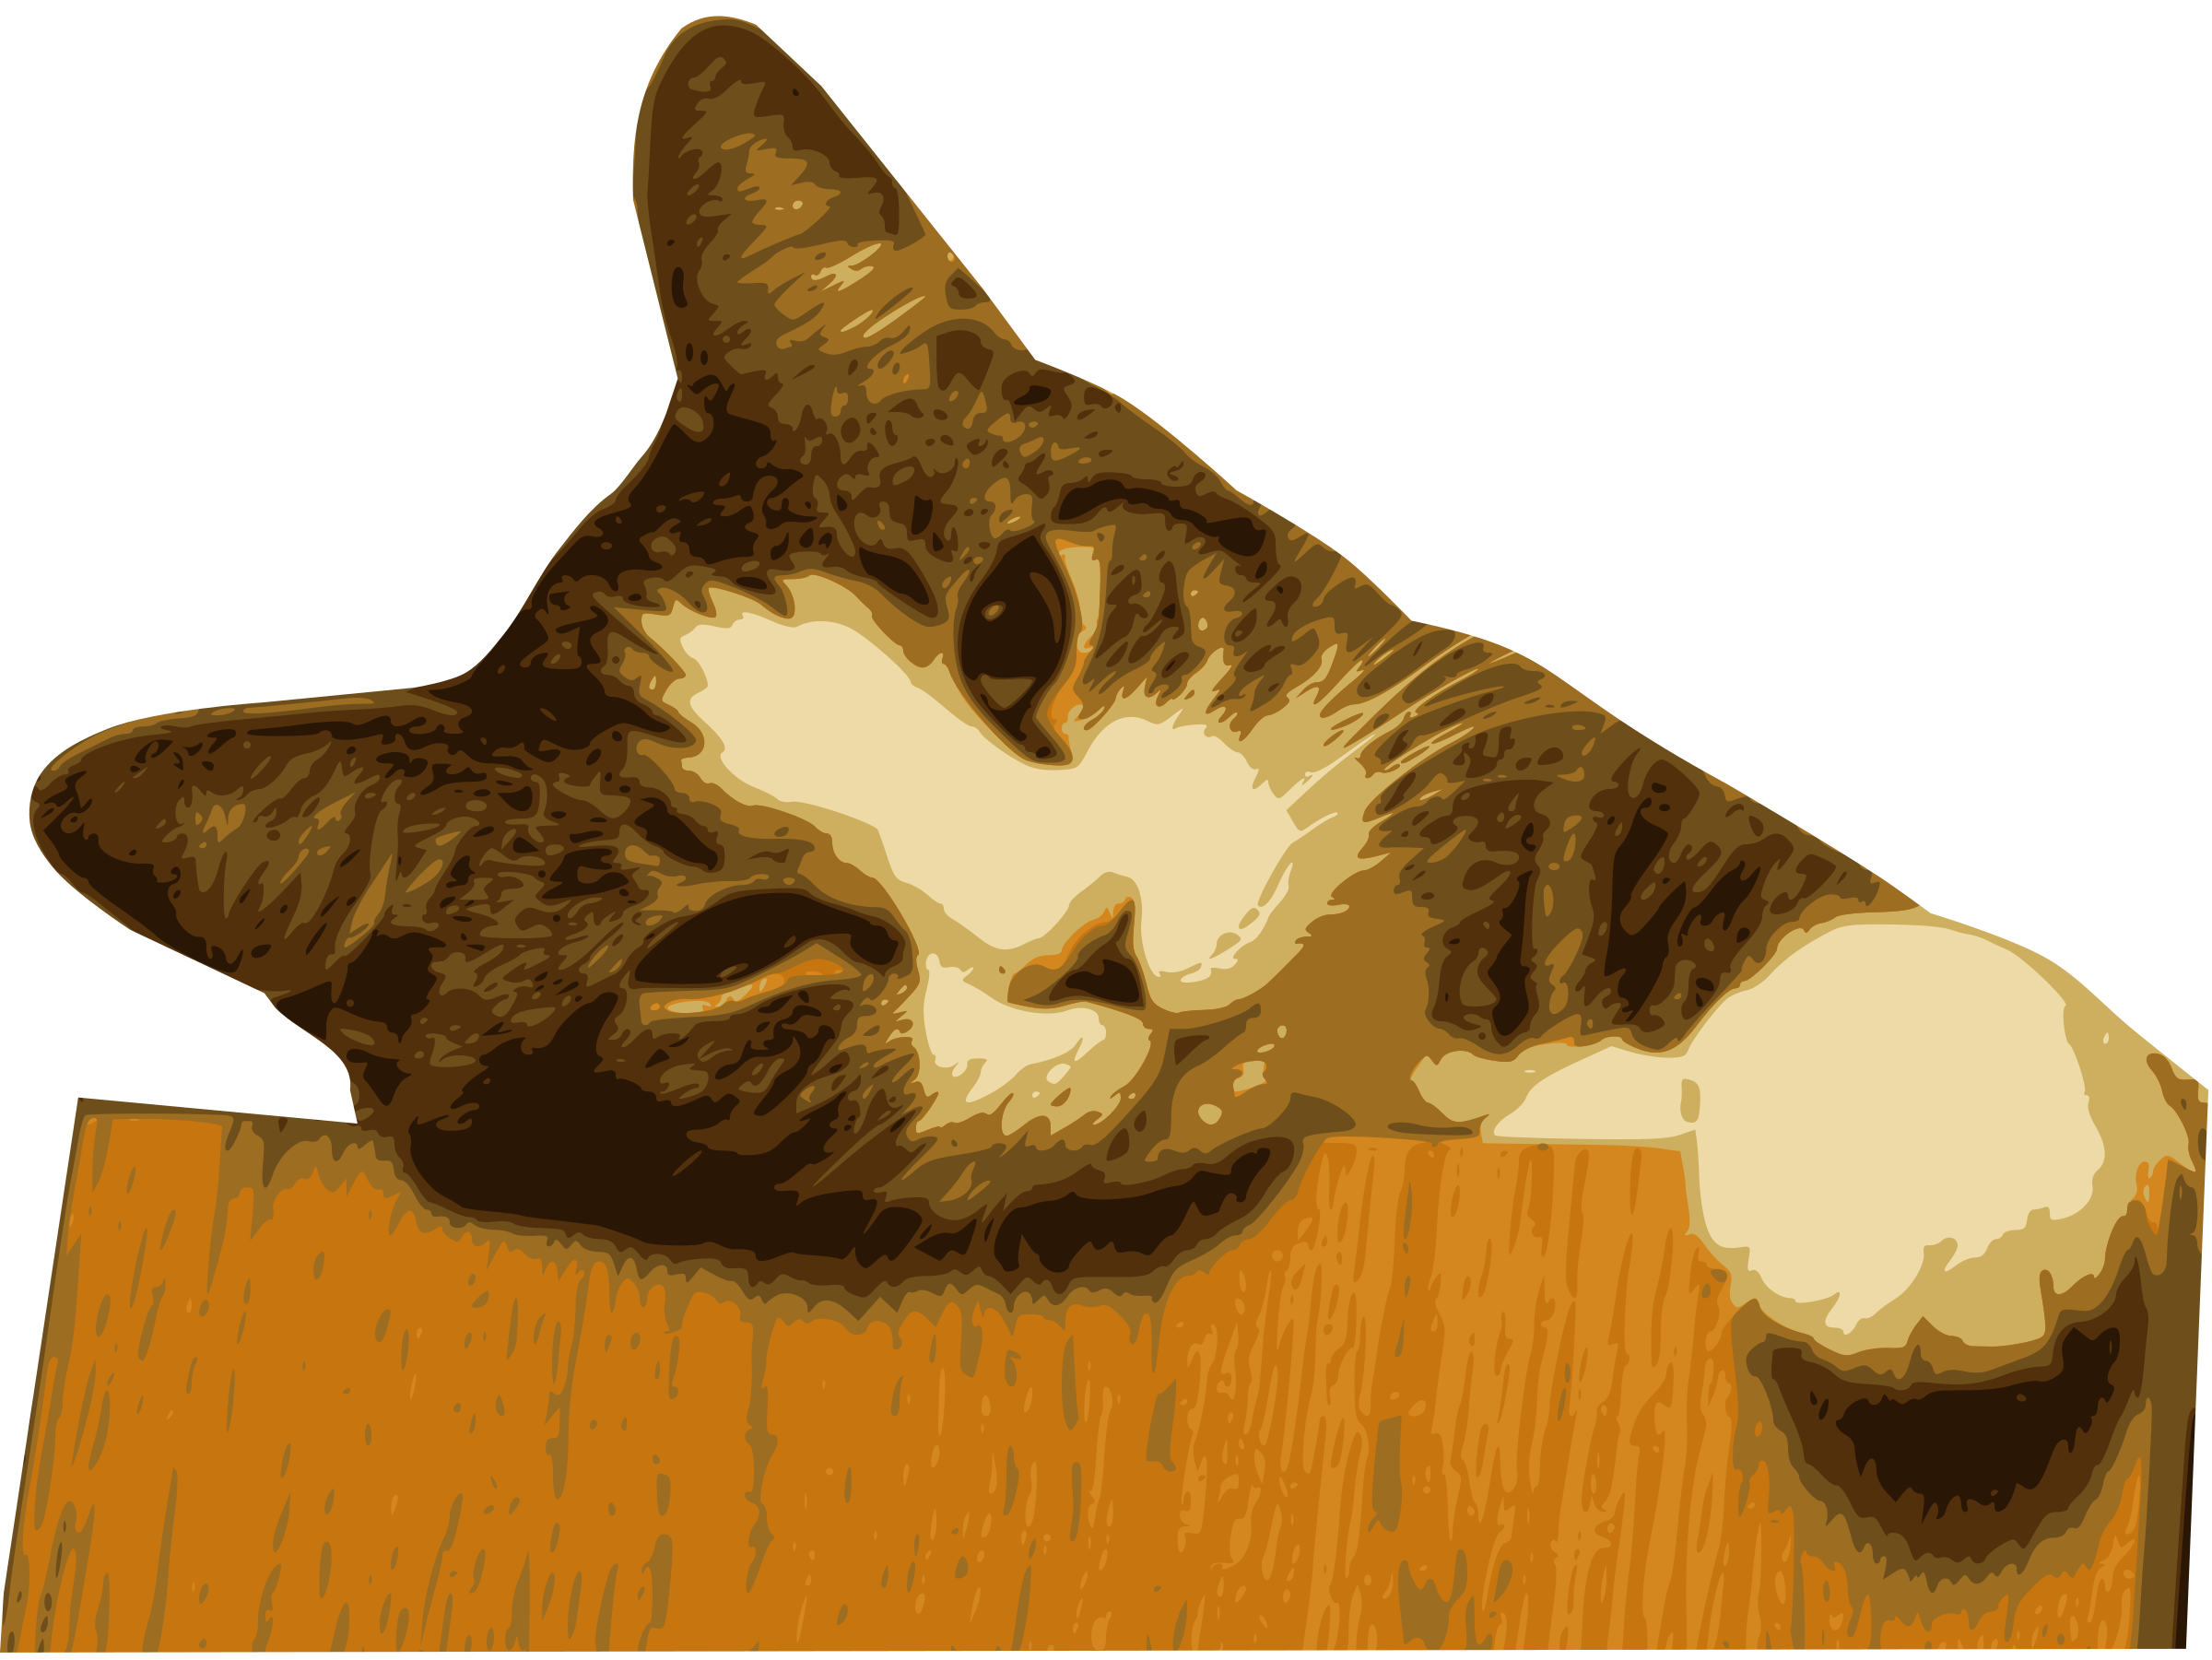 Cat on the table clipart graphic library library Clipart - Relaxed cat (bg removed) graphic library library